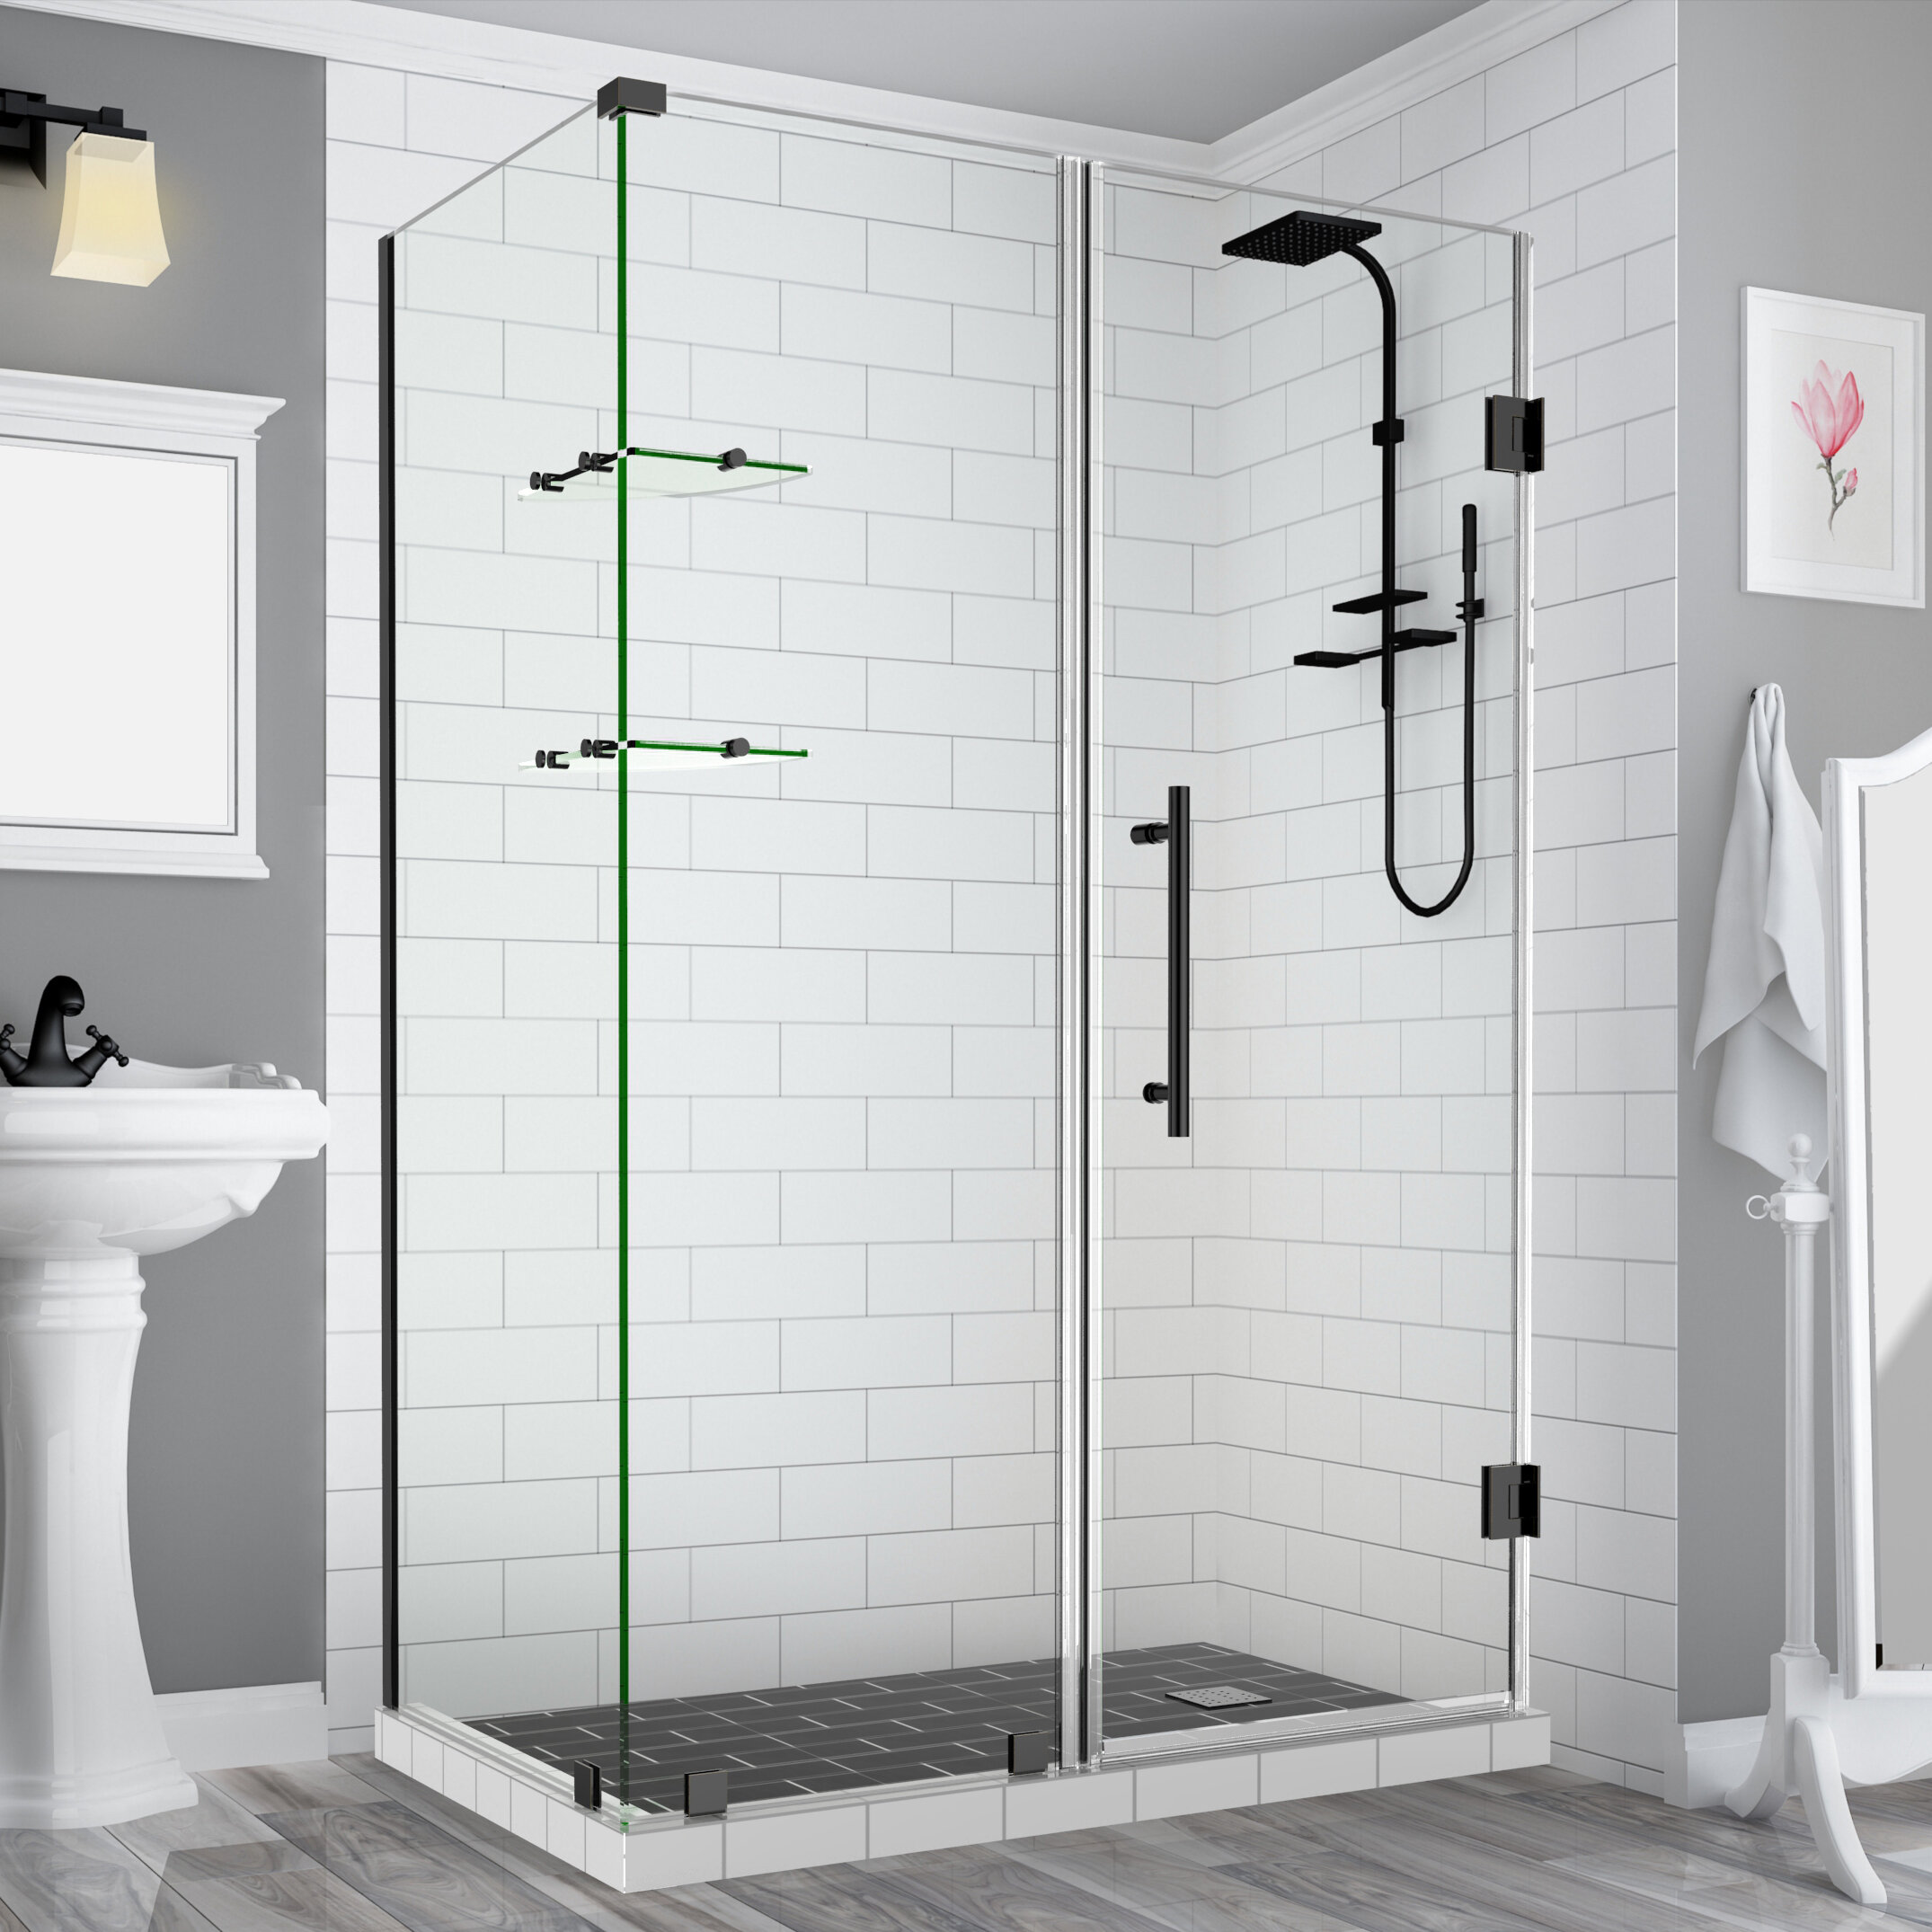 Bromleygs 64 25 To 65 25 X 30 375 X 72 Frameless Corner Hinged Shower Enclosure With Glass Shelves In Matte Black